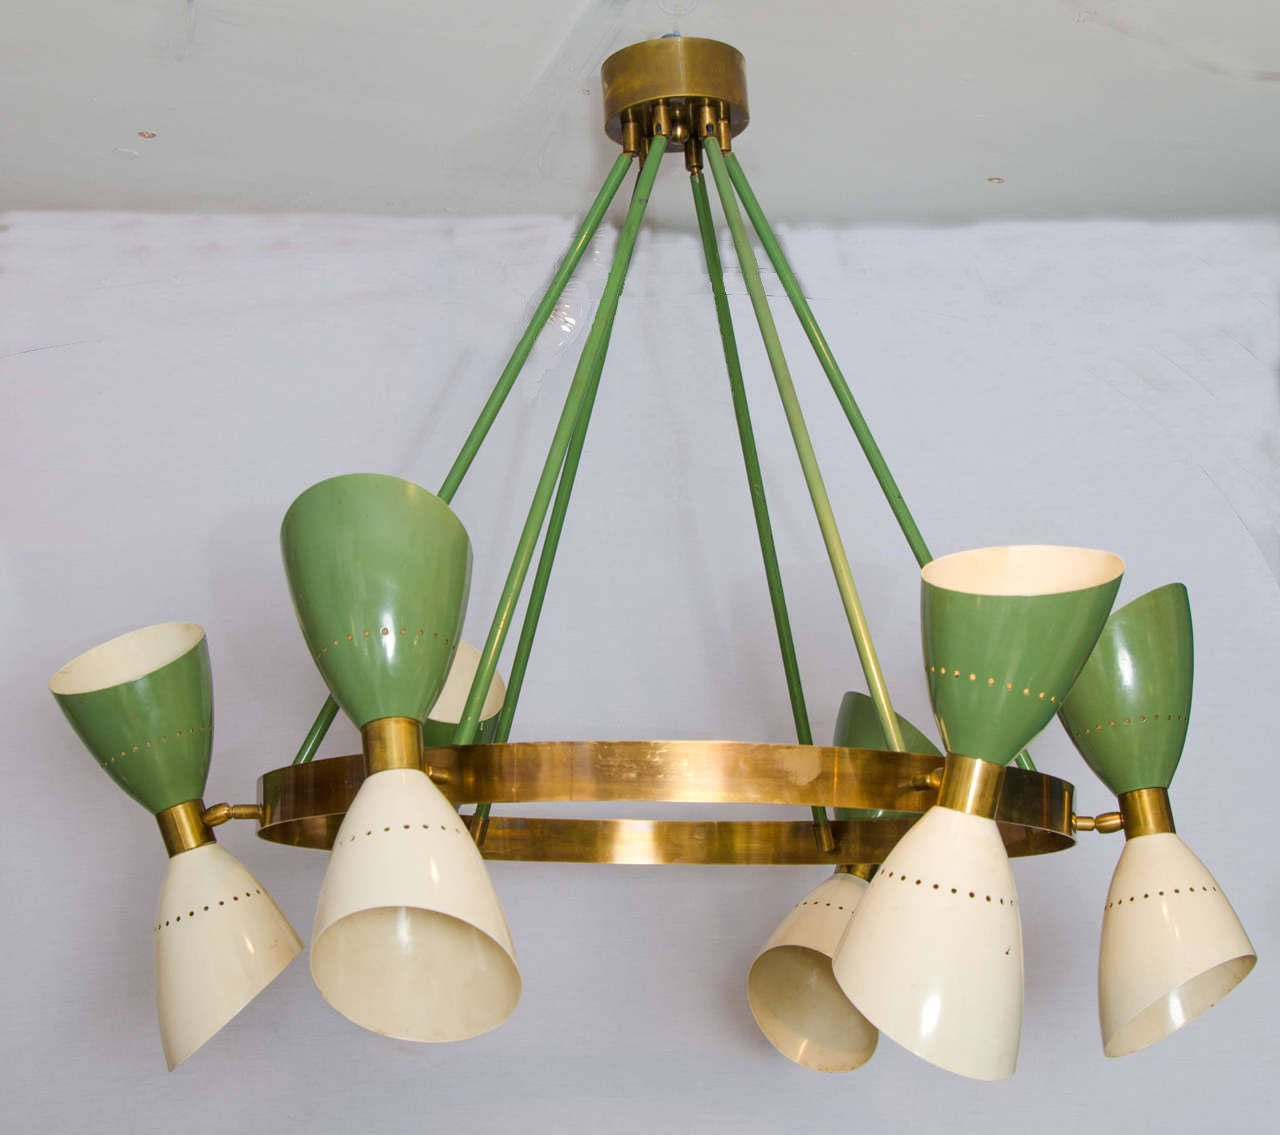 Large italian 1950s chandelier with hourglass shades at 1stdibs arubaitofo Choice Image